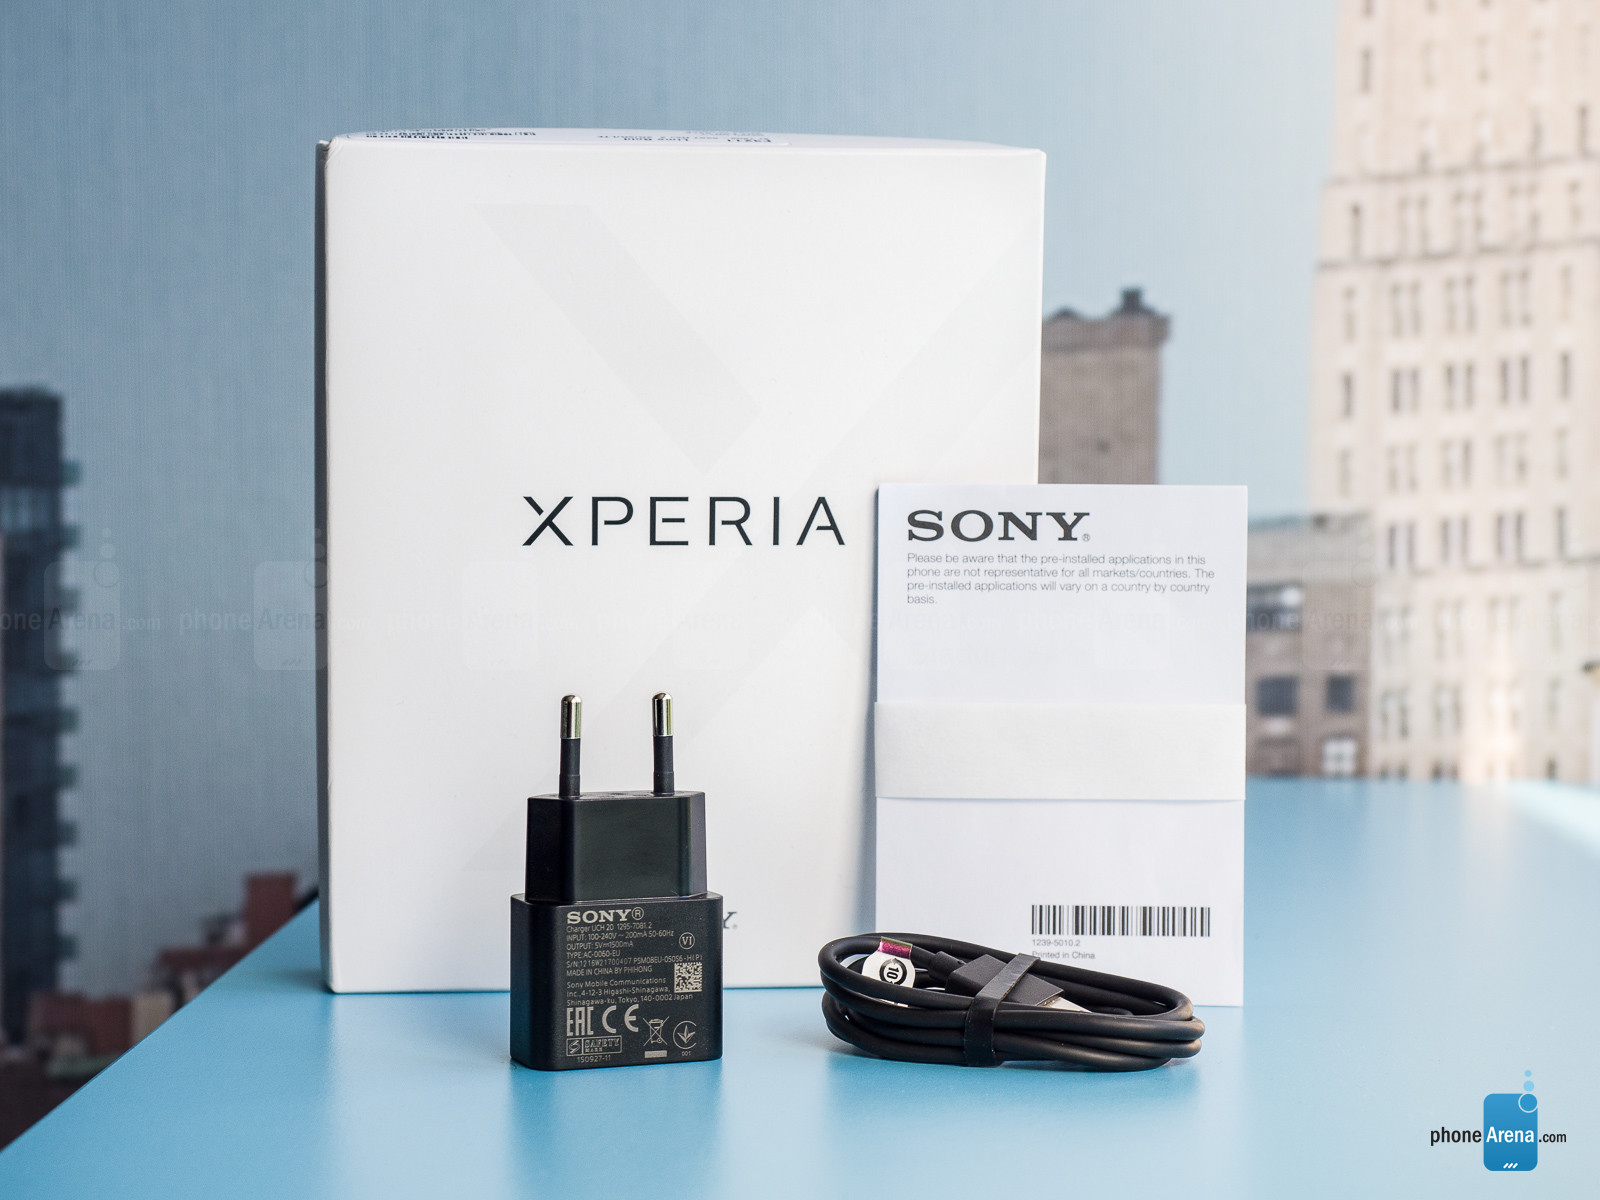 http://click.ir/wp-content/uploads/2016/07/Sony-Xperia-XA-Ultra-Review-033.jpg